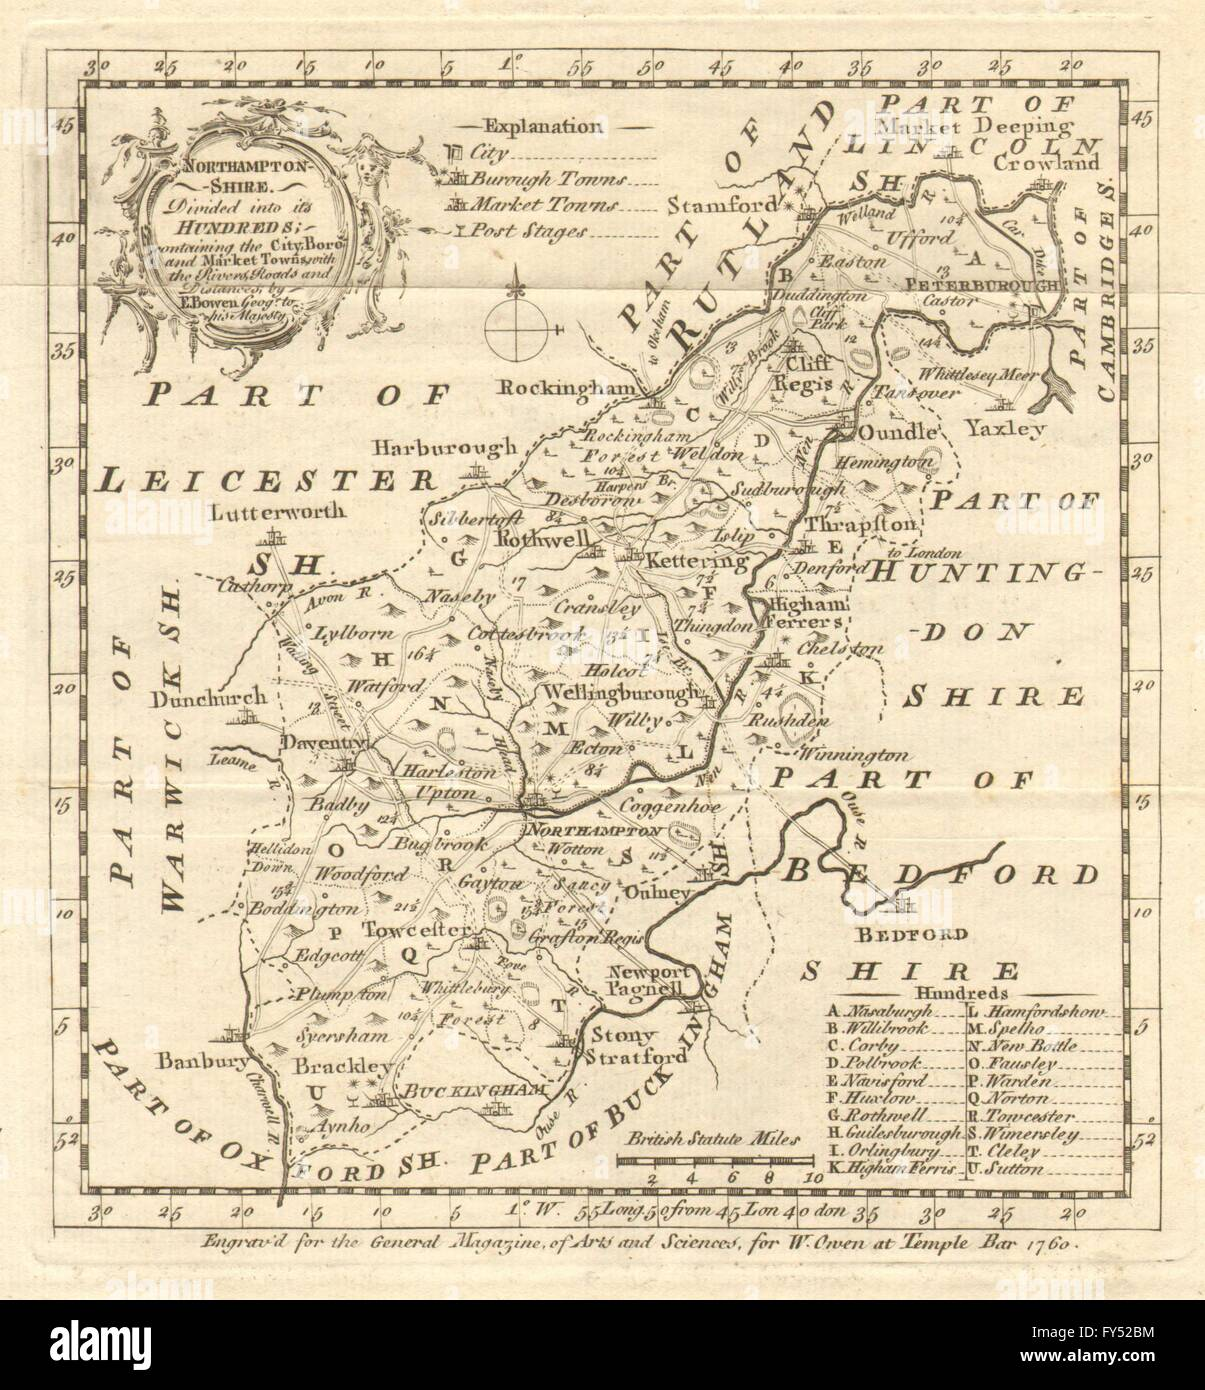 Antique map of Northamptonshire by Emmanuel Bowen, 1760 - Stock Image